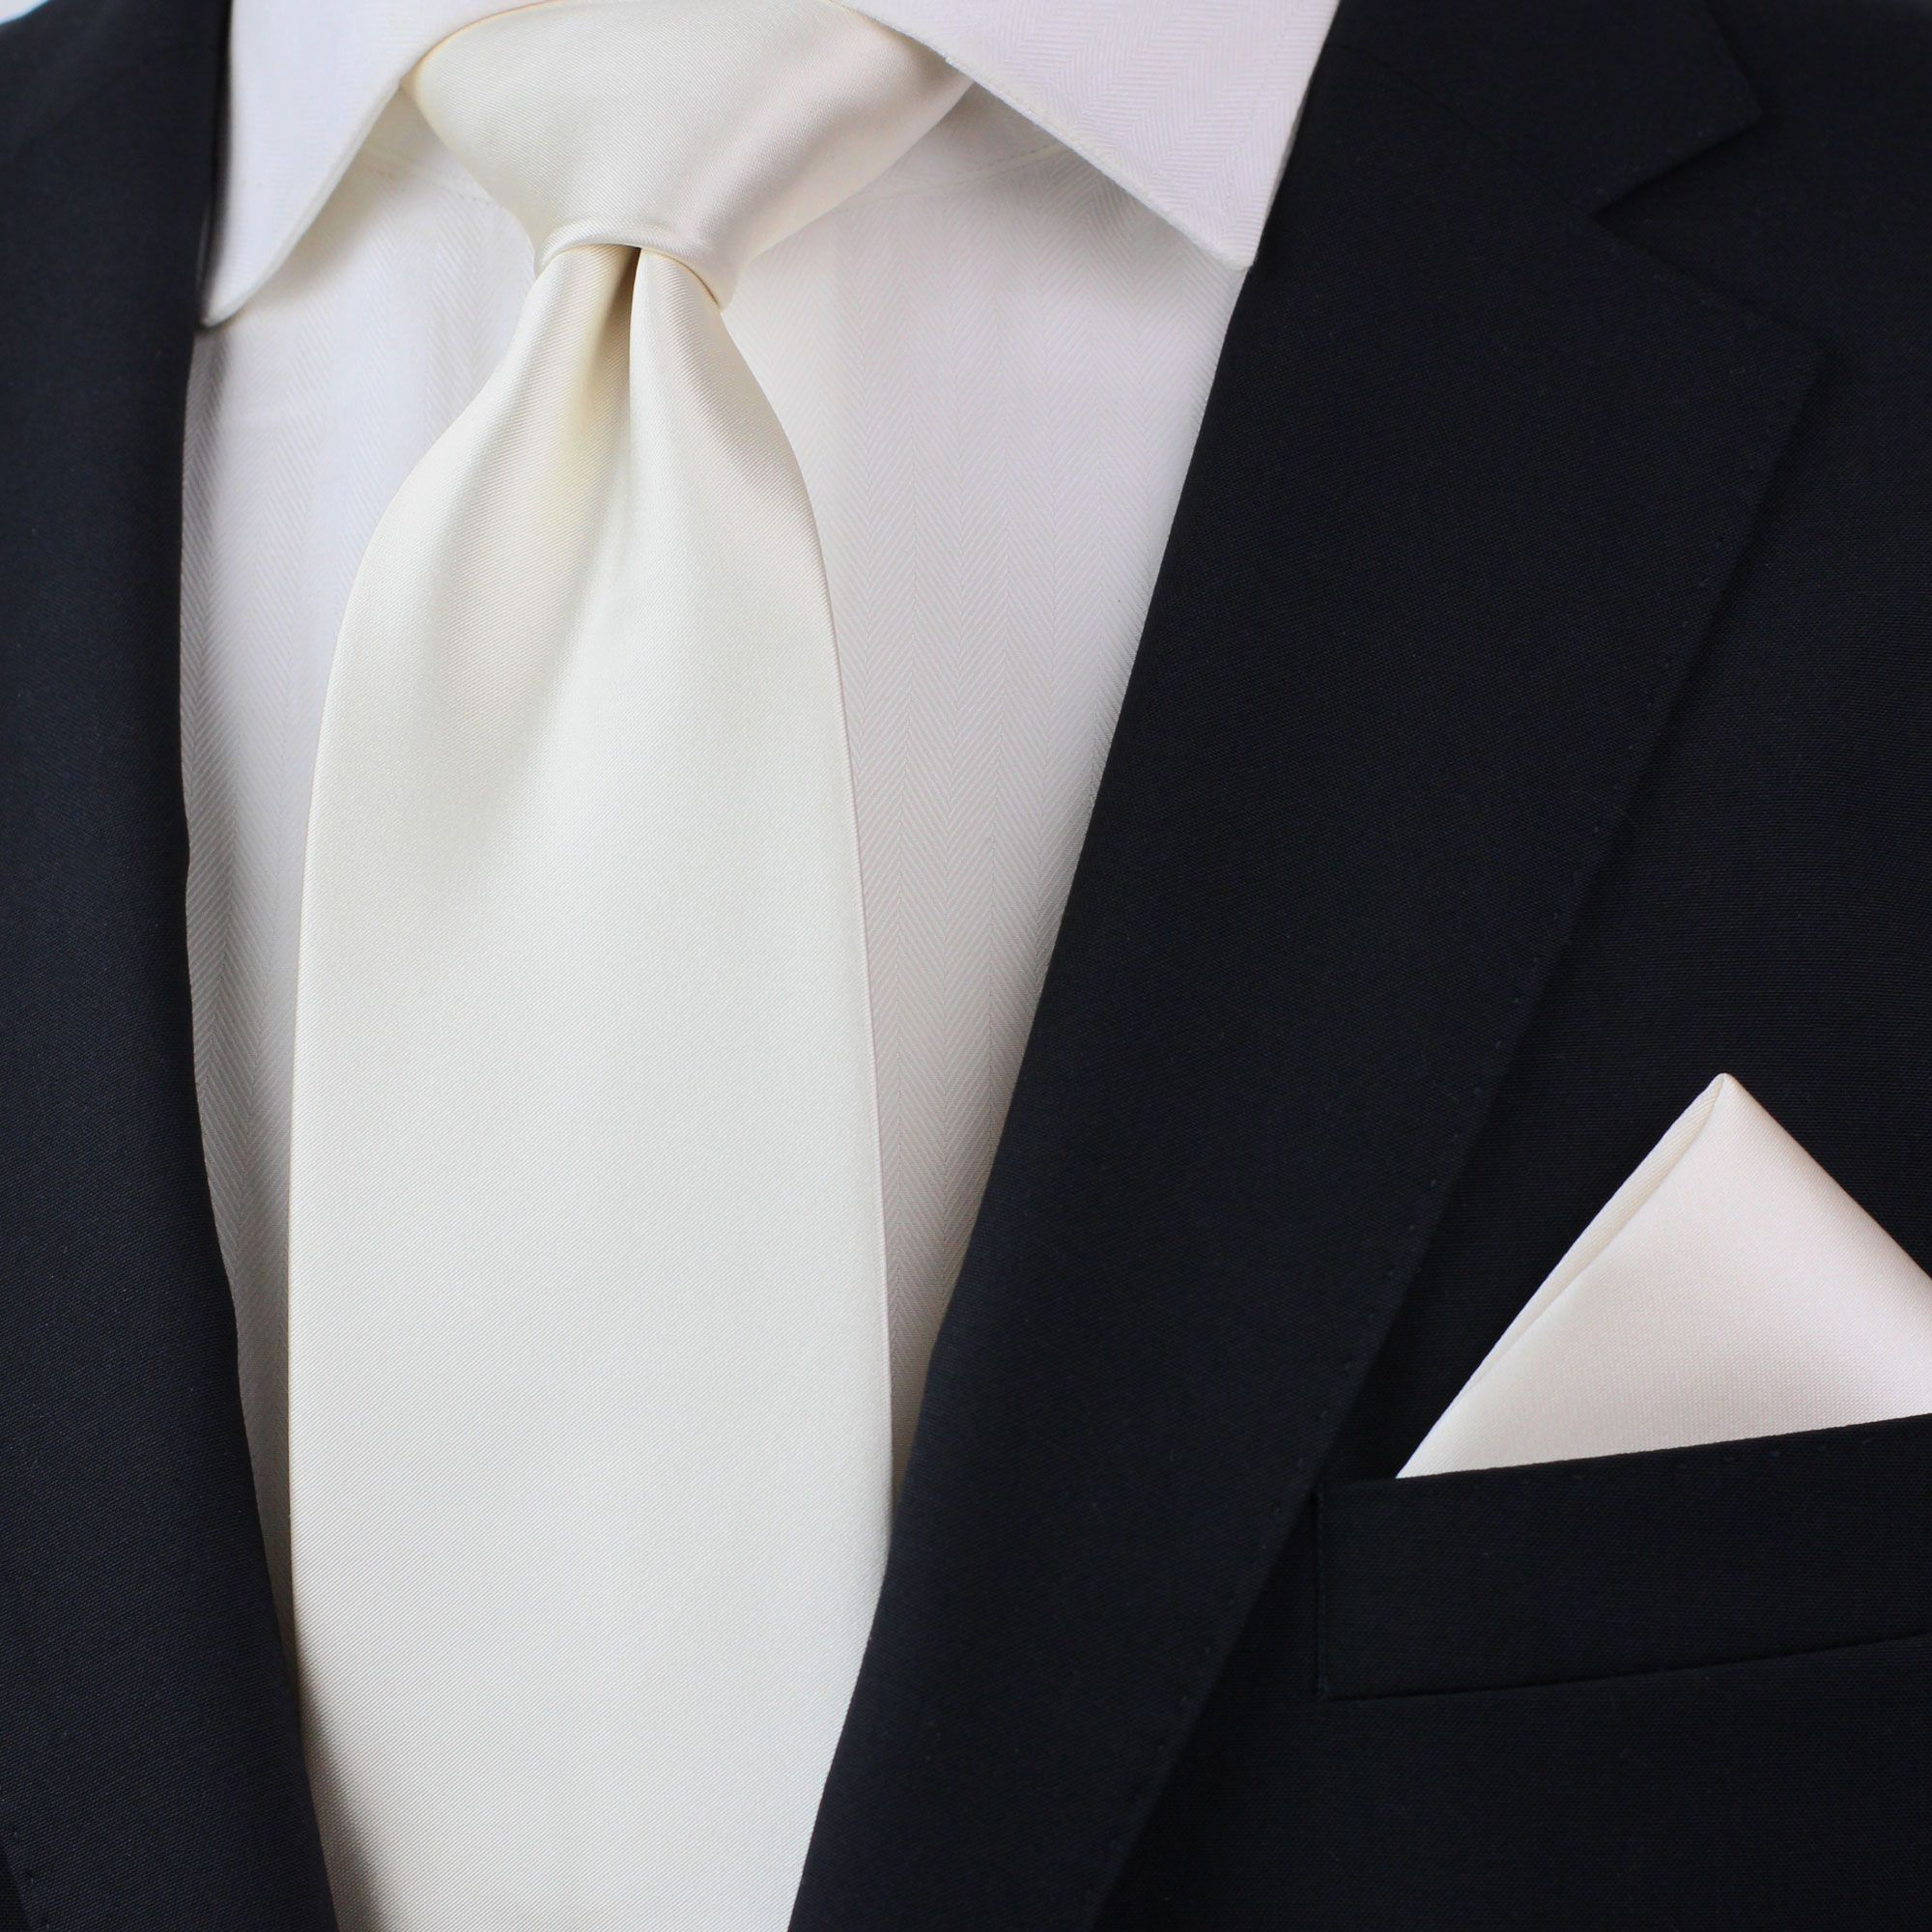 cafbcf3b8f88 Off-white cream necktie and pocket square | Ivory Wedding Color ...